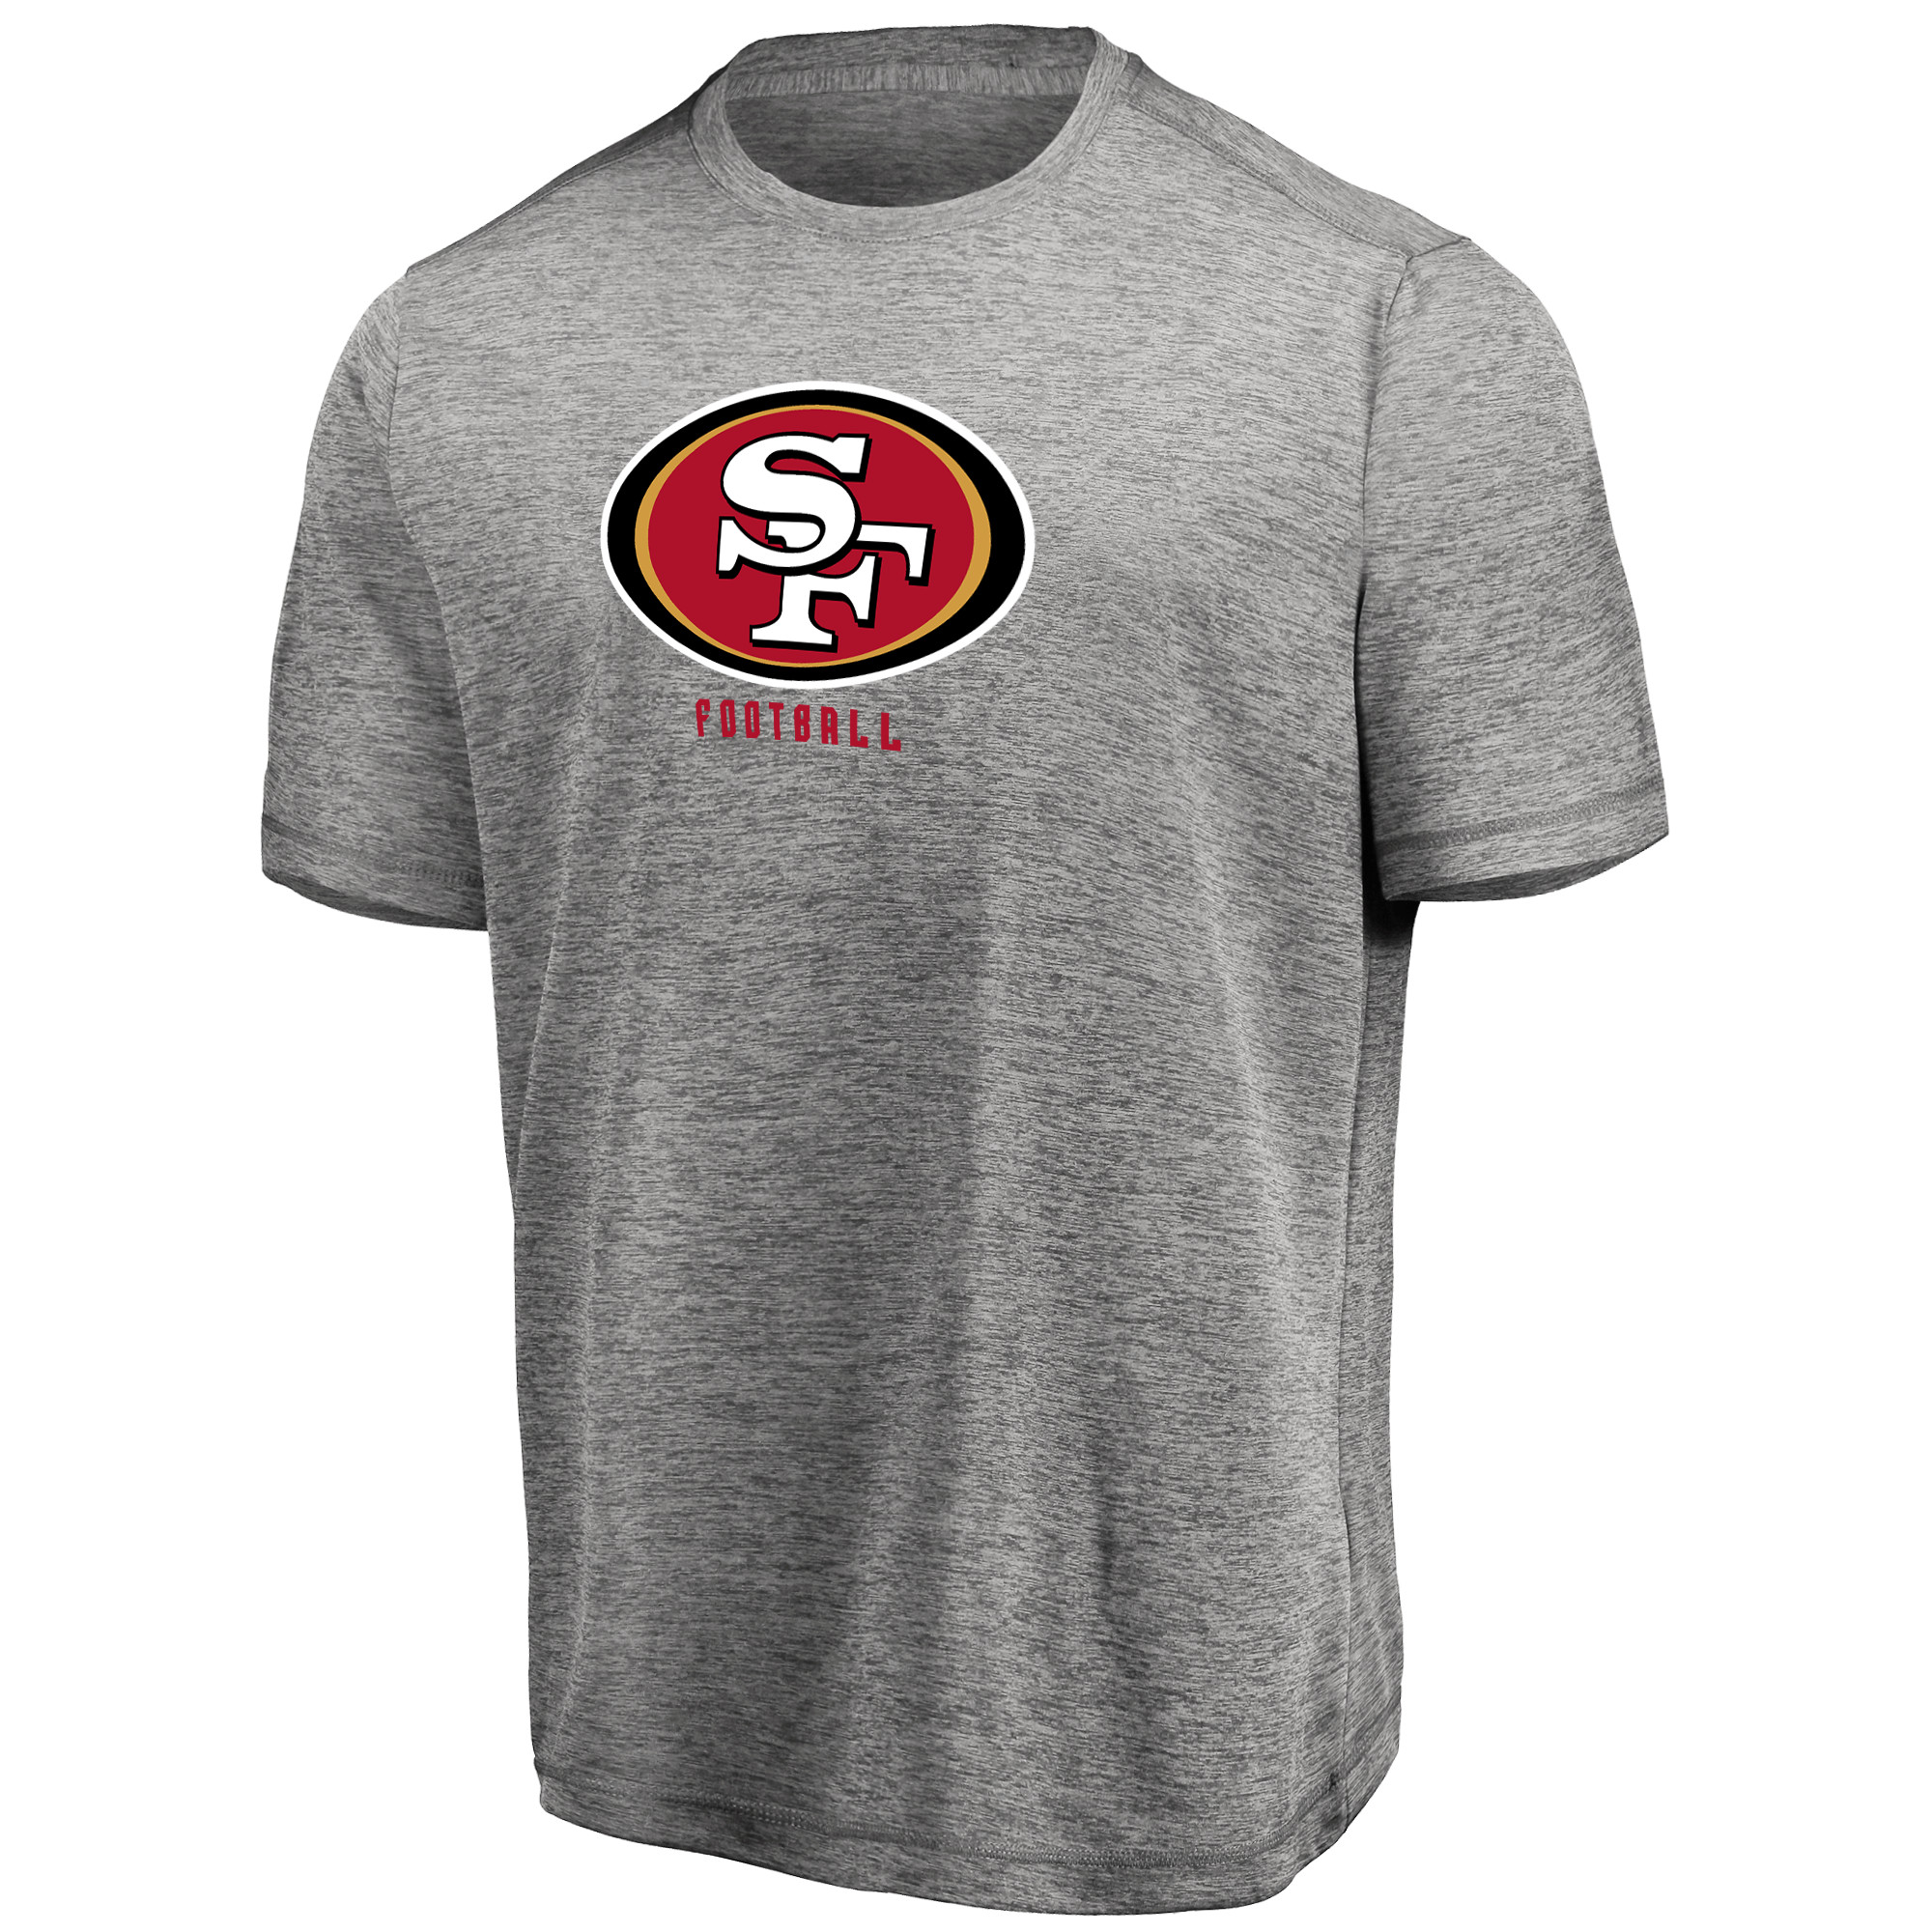 Men's Majestic Heathered Gray San Francisco 49ers Proven Winner Synthetic TX3 Cool Fabric T-Shirt